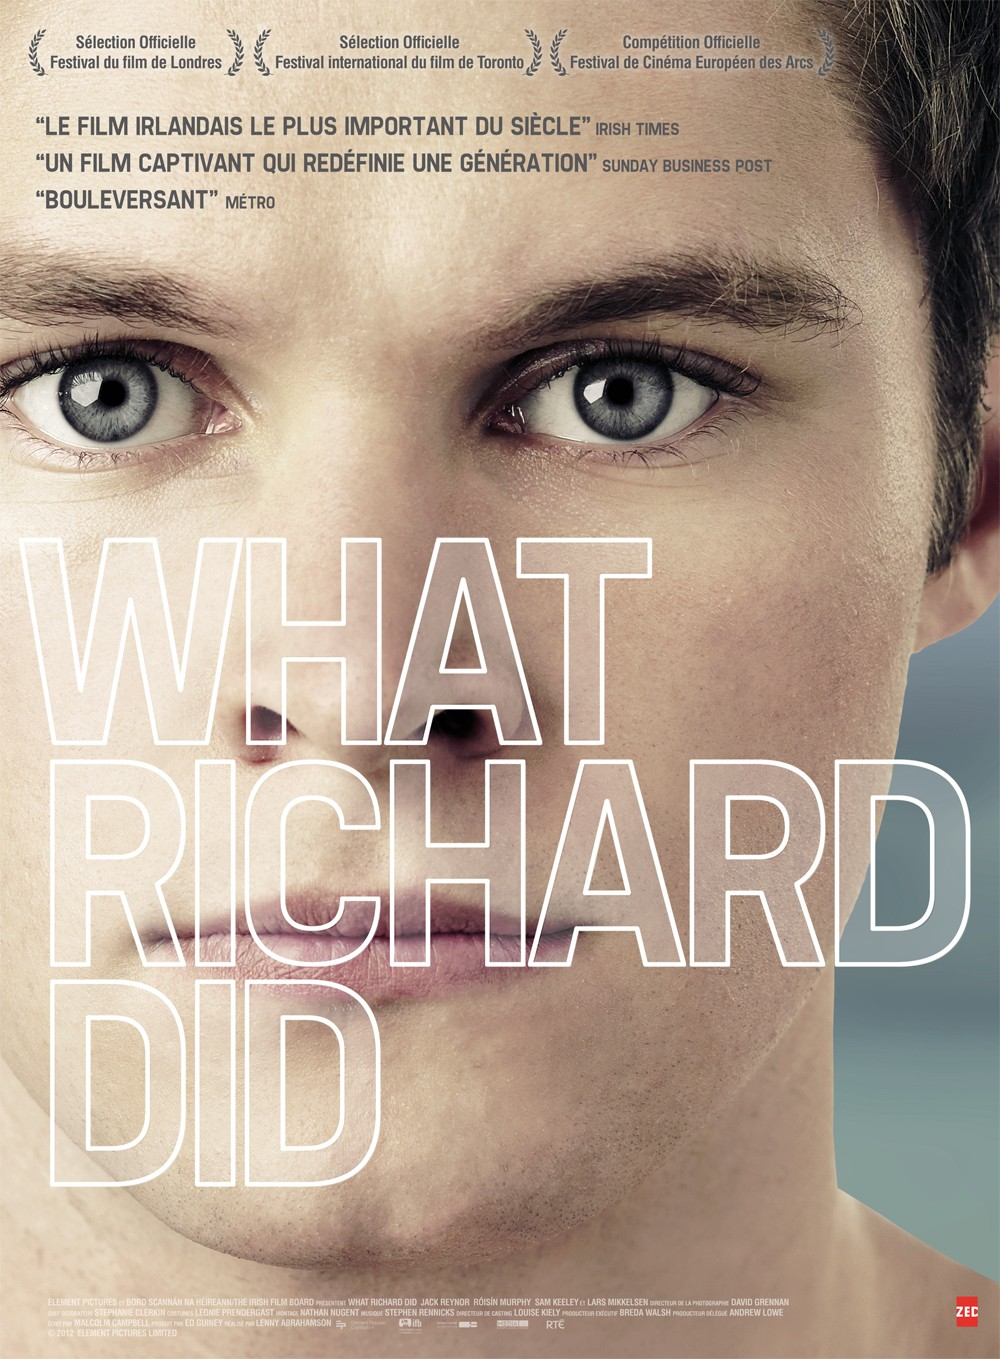 Irish Film Festival: What Richard Did